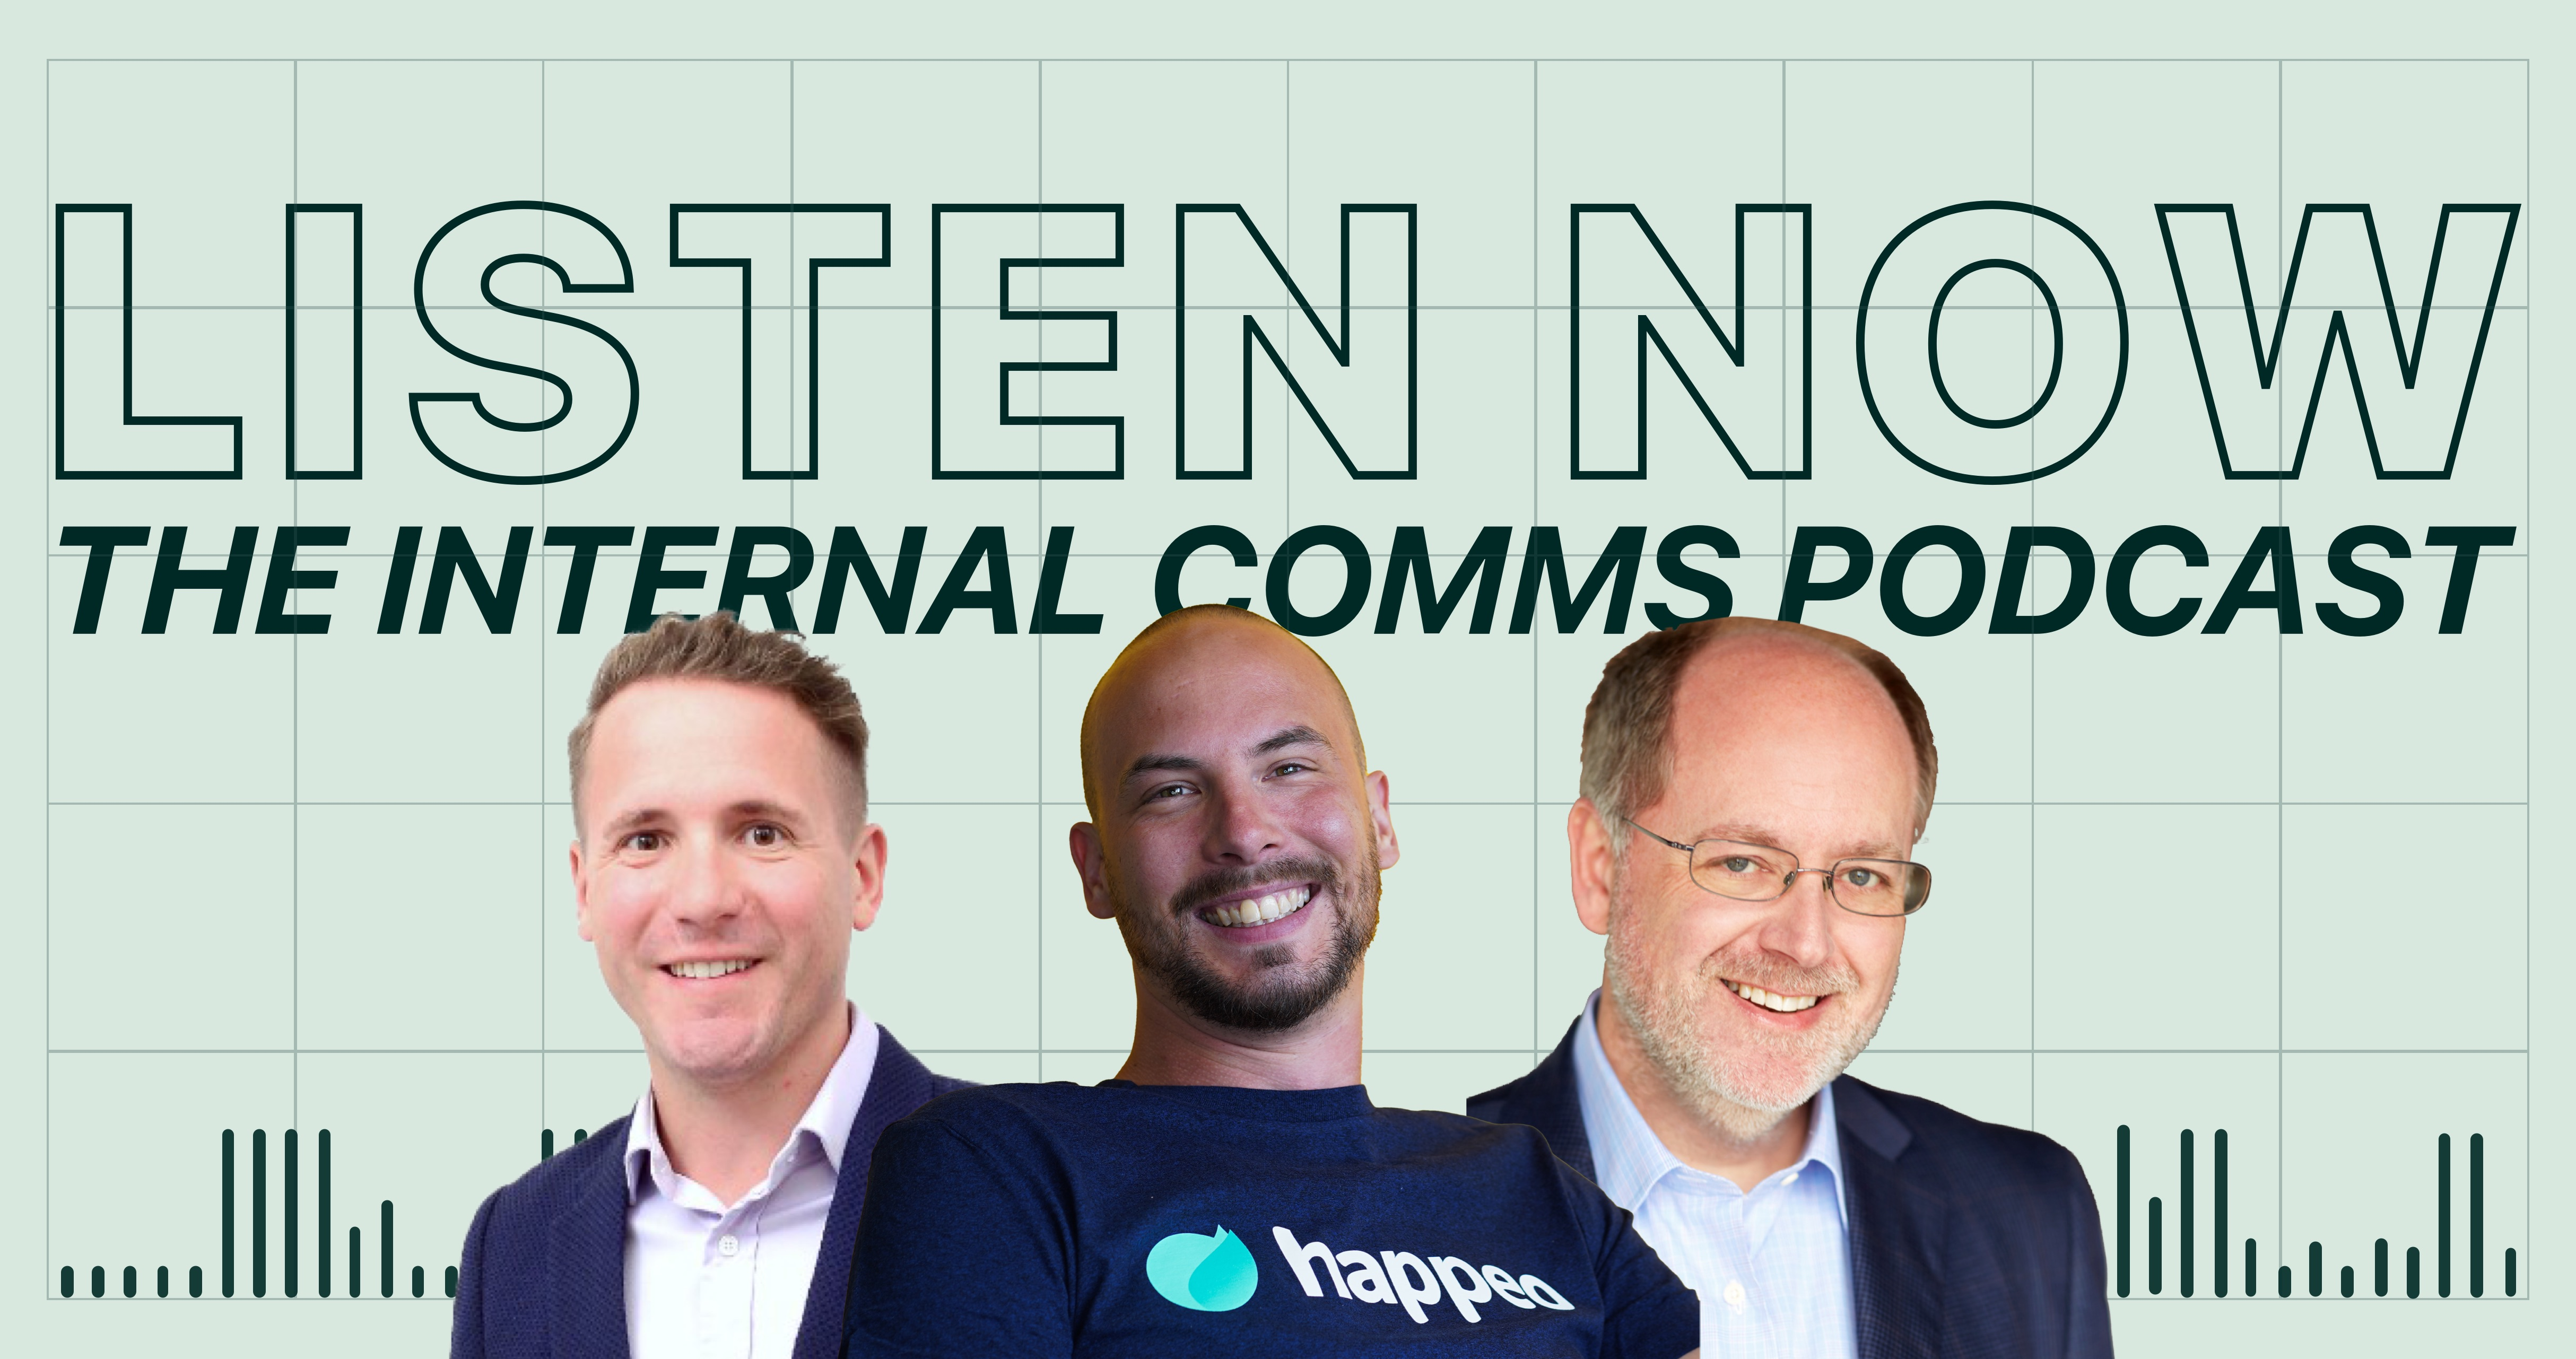 Podcast: How to connect the employee and customer experience